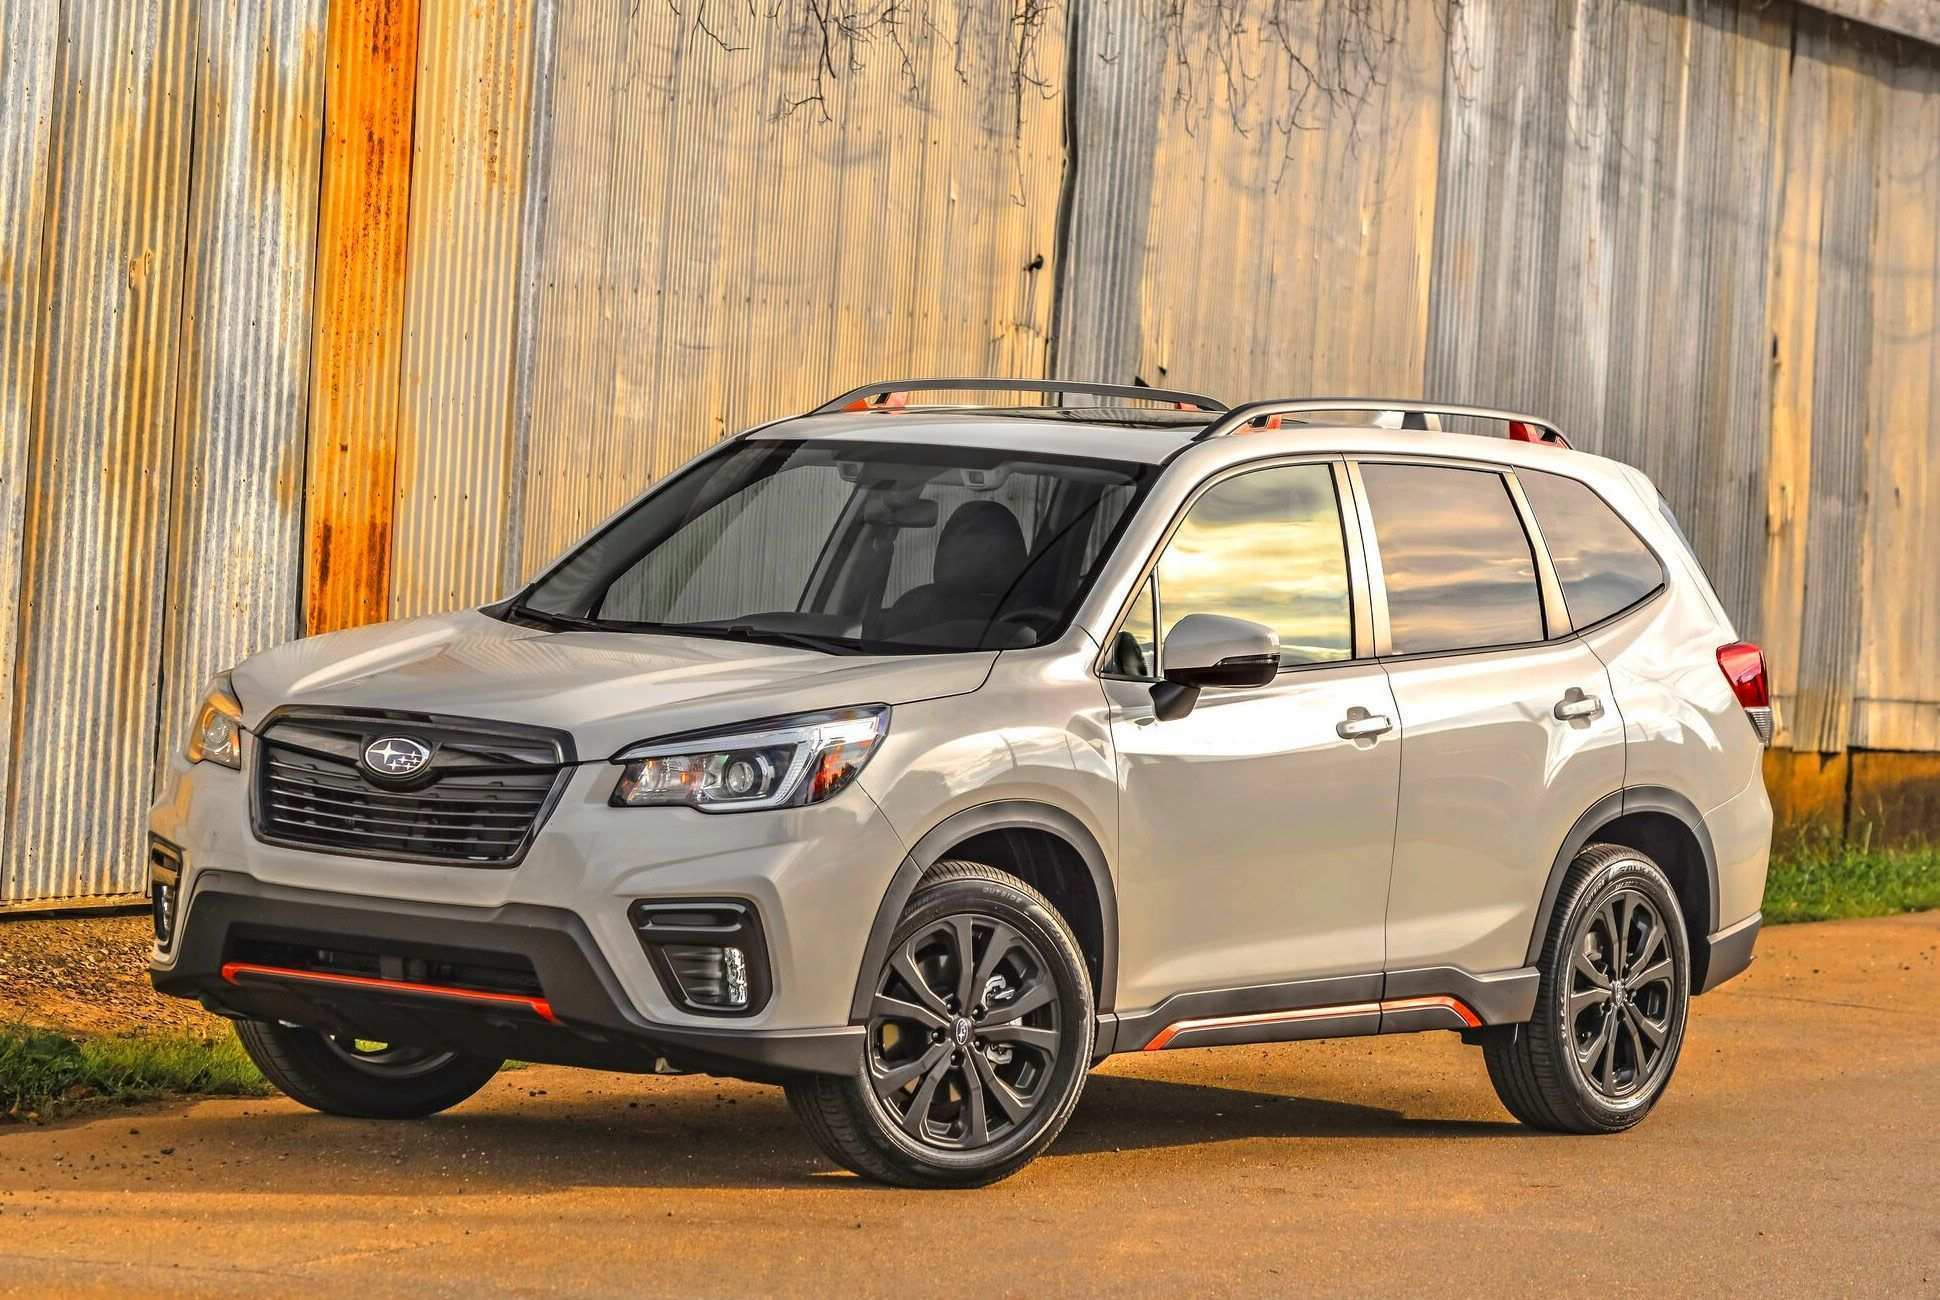 31 Gallery of Subaru Forester 2019 Ground Clearance Pricing with Subaru Forester 2019 Ground Clearance